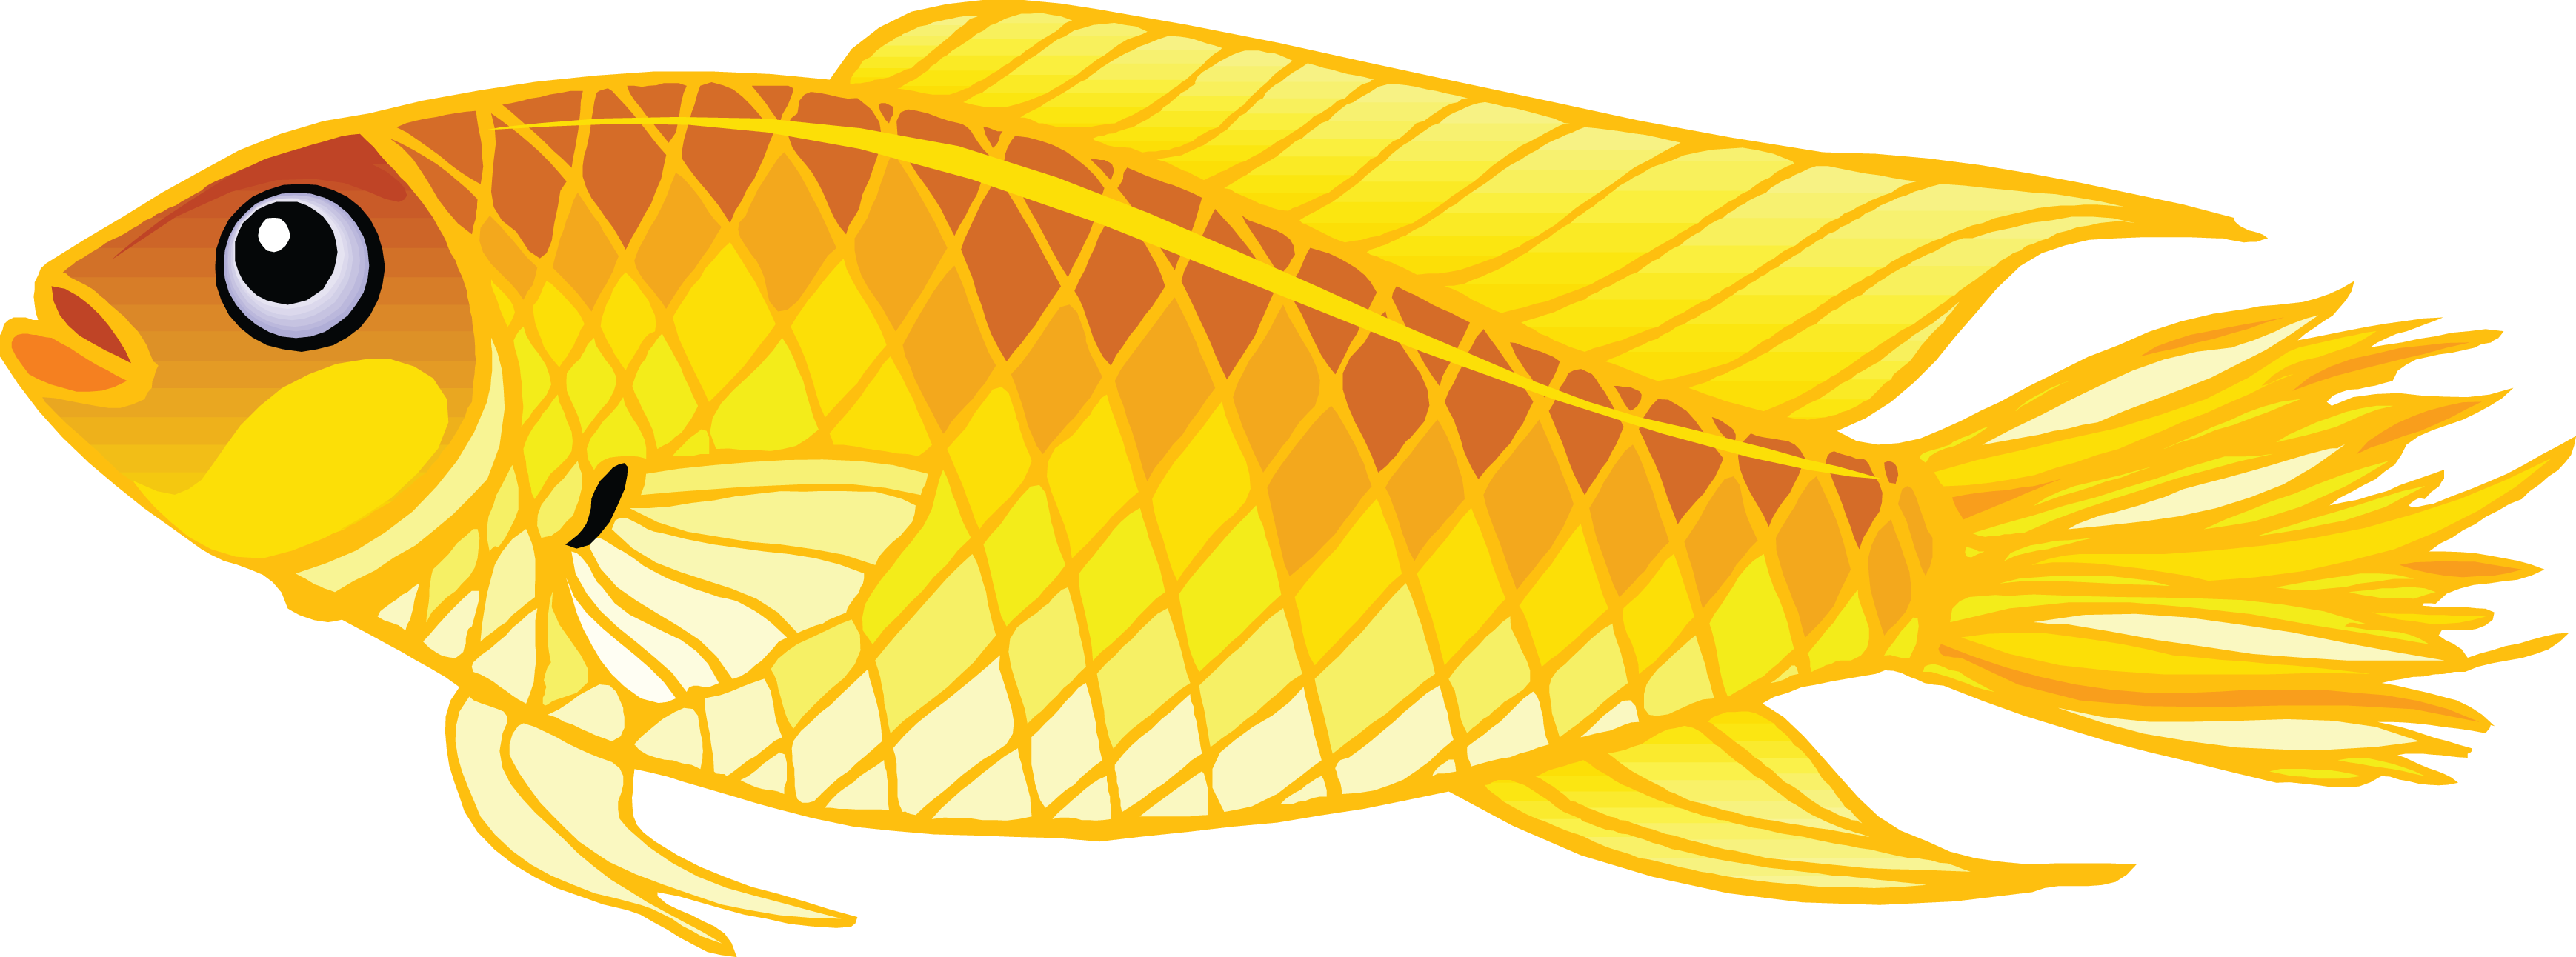 Transparent pictures free icons. Fish clipart png picture transparent download